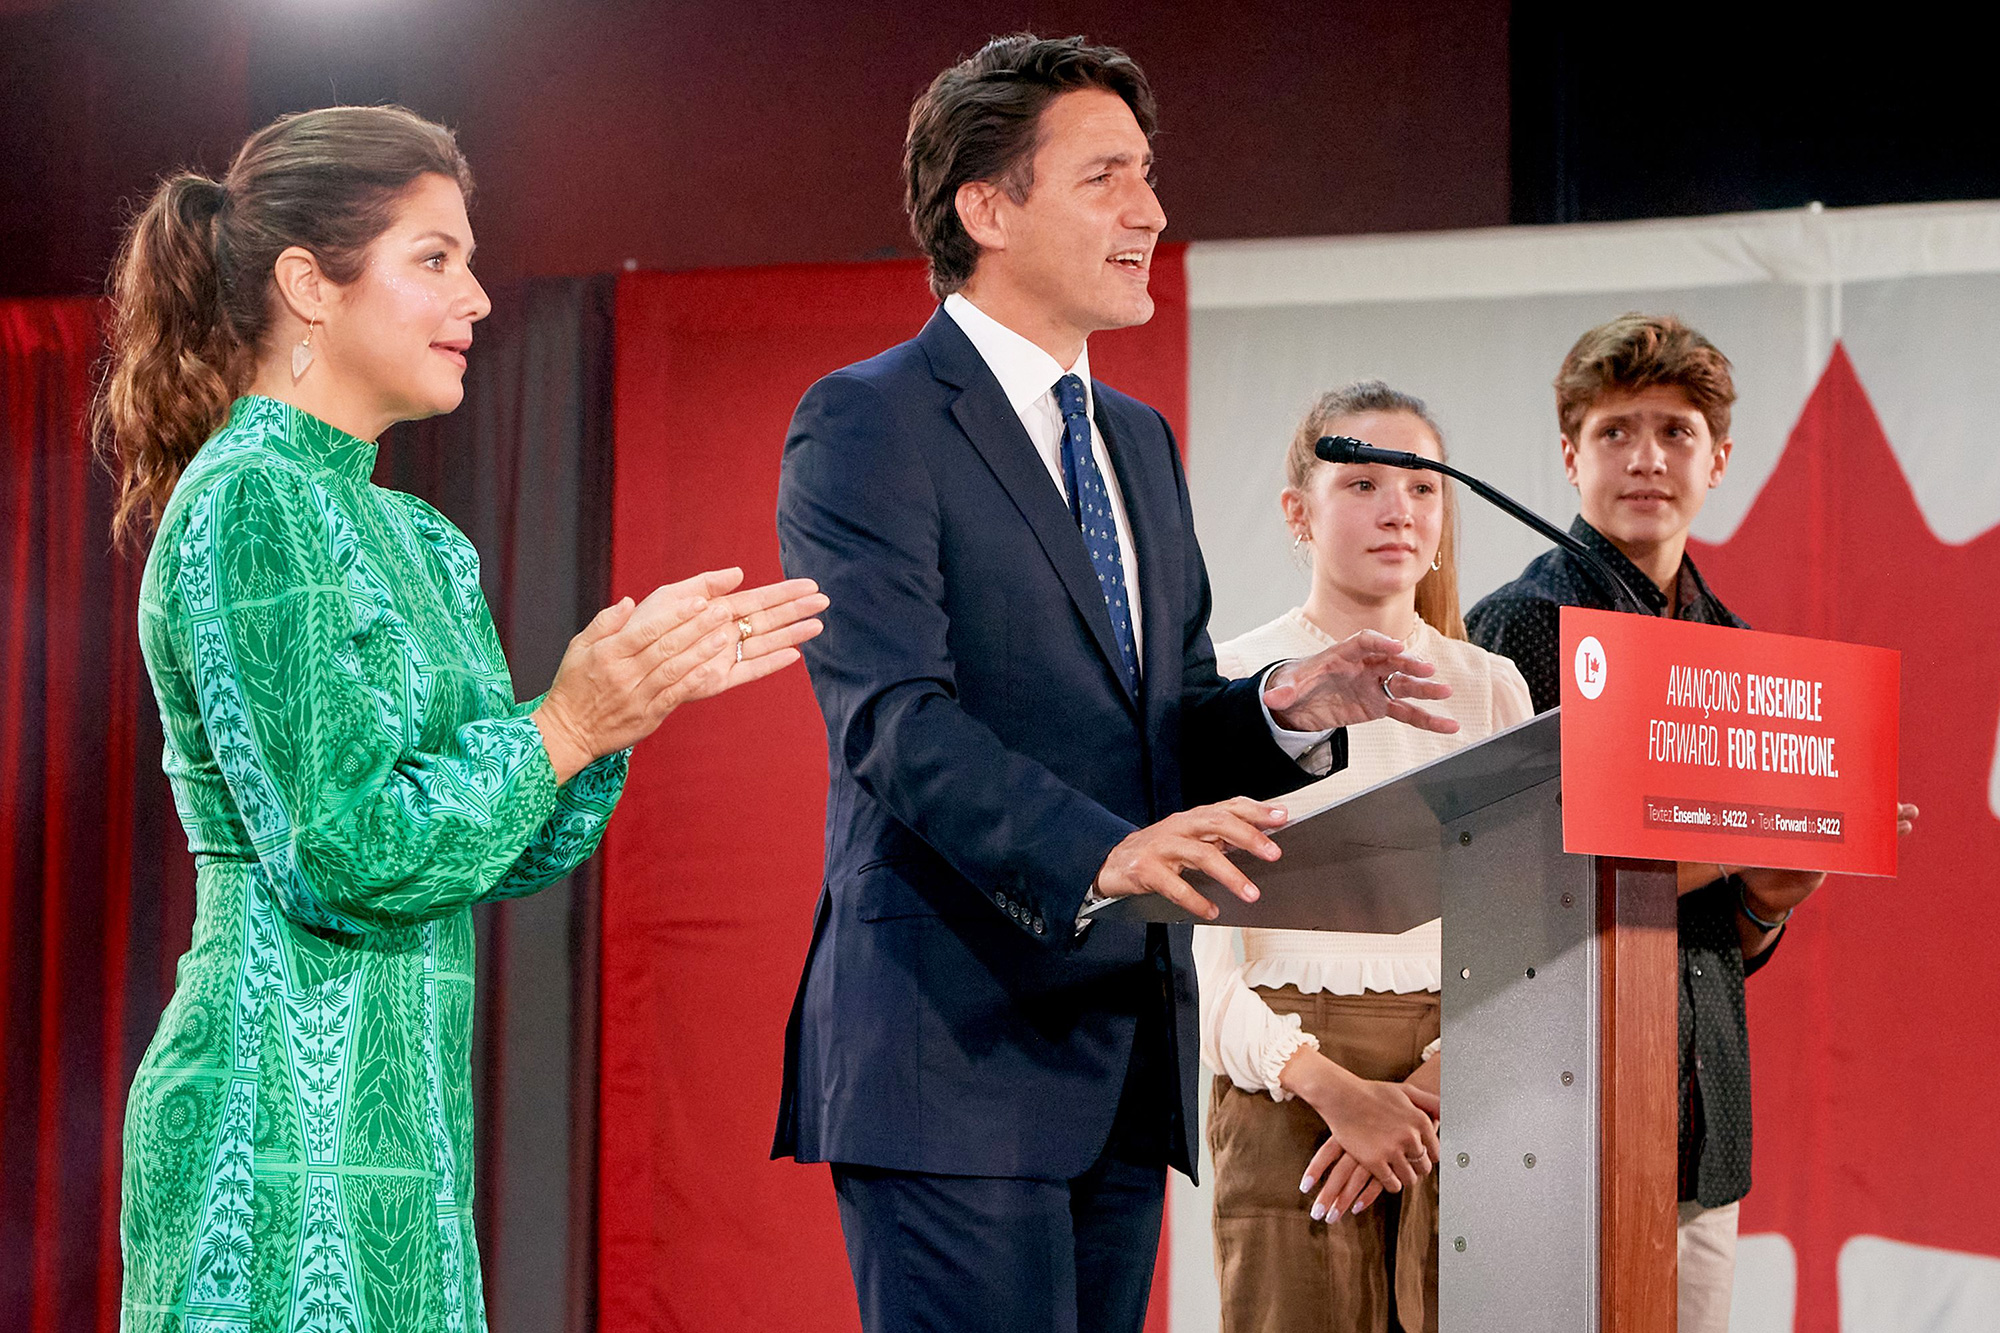 Canadian Prime Minister and Liberal Party leader Justin Trudeau (2-R), standing next to his wife Sophie Gregoire (L), daughter Ella Grace (2-R) and son Xavier (R), addresses supporters as he celebrates his election victory in Montreal, Quebec, Canada, 20 September 2021. Liberal Party leader Justin Trudeau retained his position as Canadian prime minister in the federal election but will be forced to form a minority government. 2021 Canadian federal election, Montreal, Canada - 21 Sep 2021